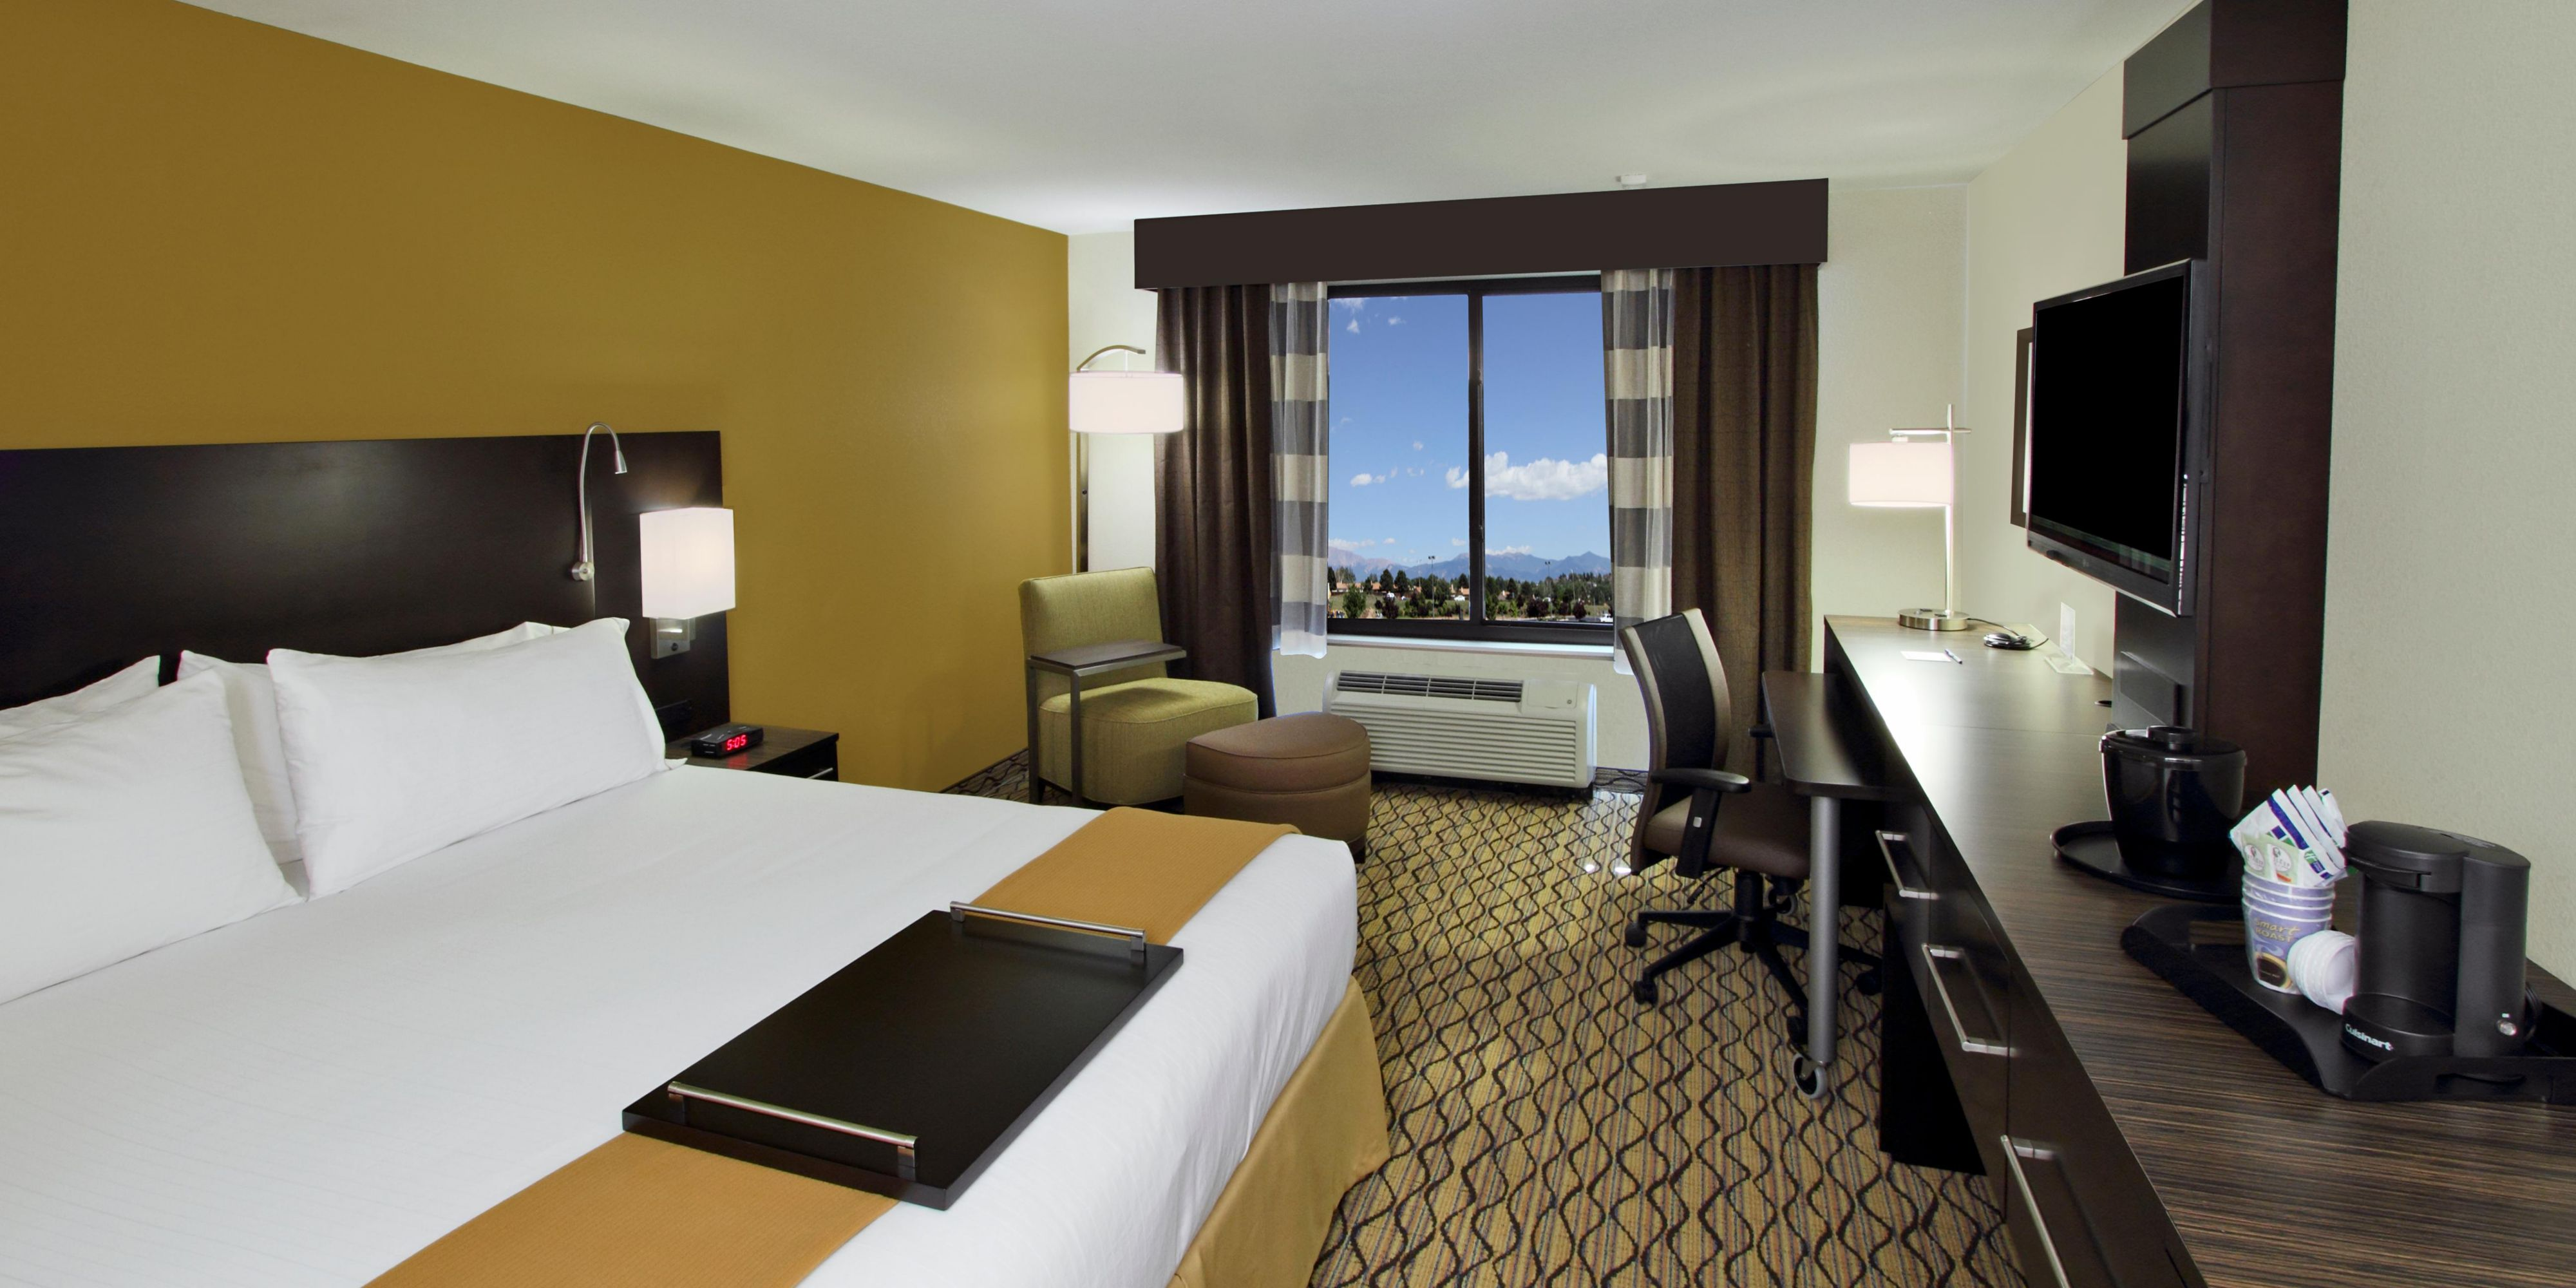 Holiday Inn Express & Suites Colorado Springs First & Main Hotel